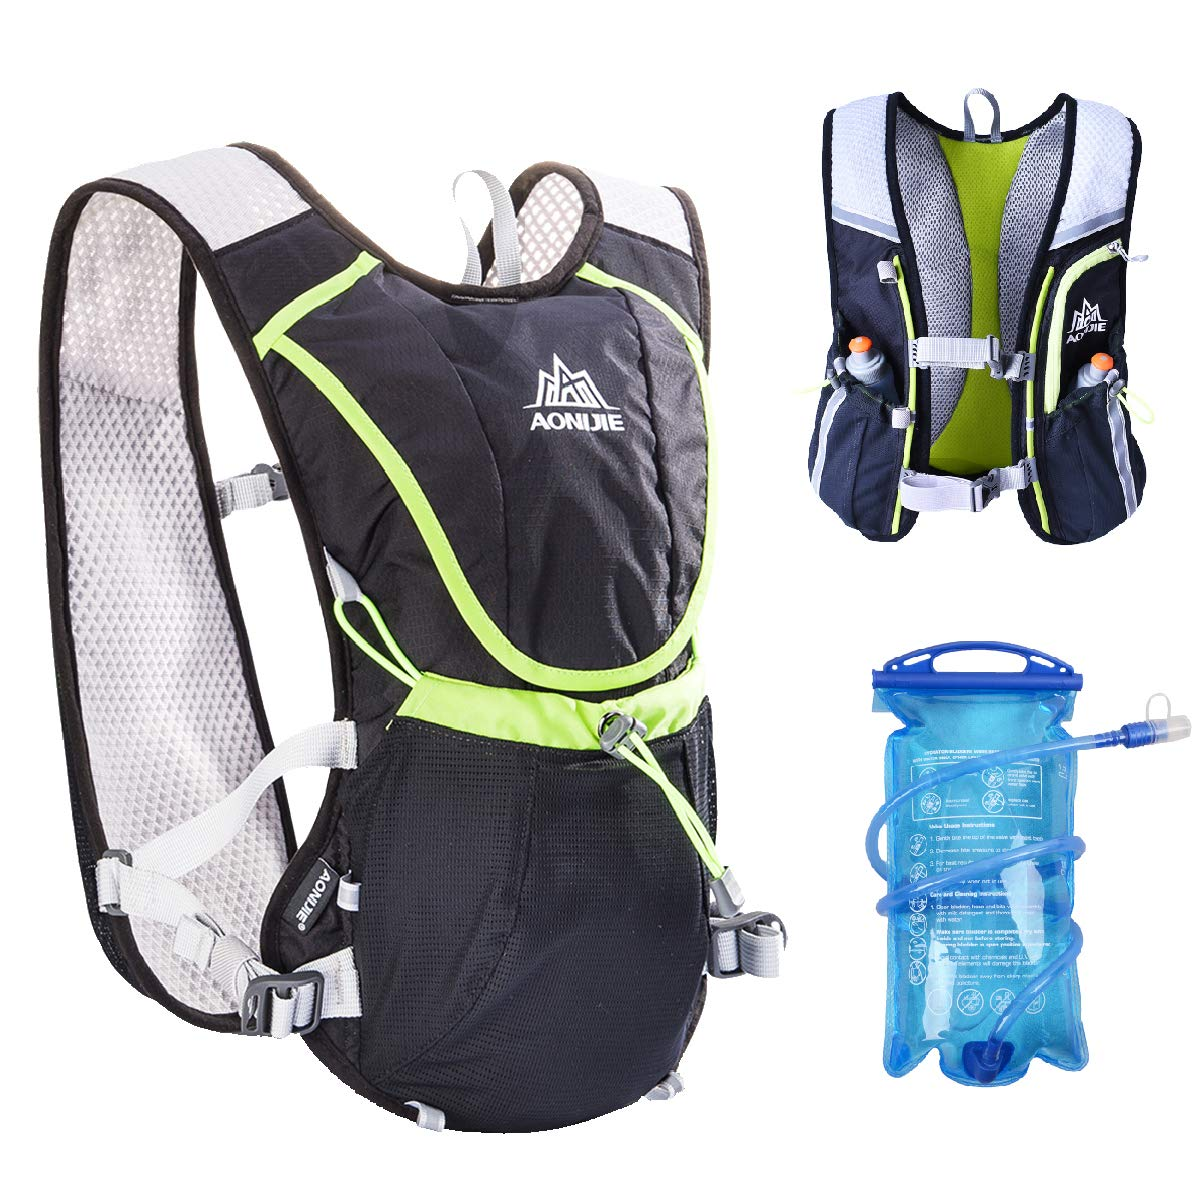 TRIWONDER Hydration Pack Backpack Professional 8L Outdoors Mochilas Trail Marathoner Running Race Cycling Hydration Vest (Black - with 1.5L Water Bladder)